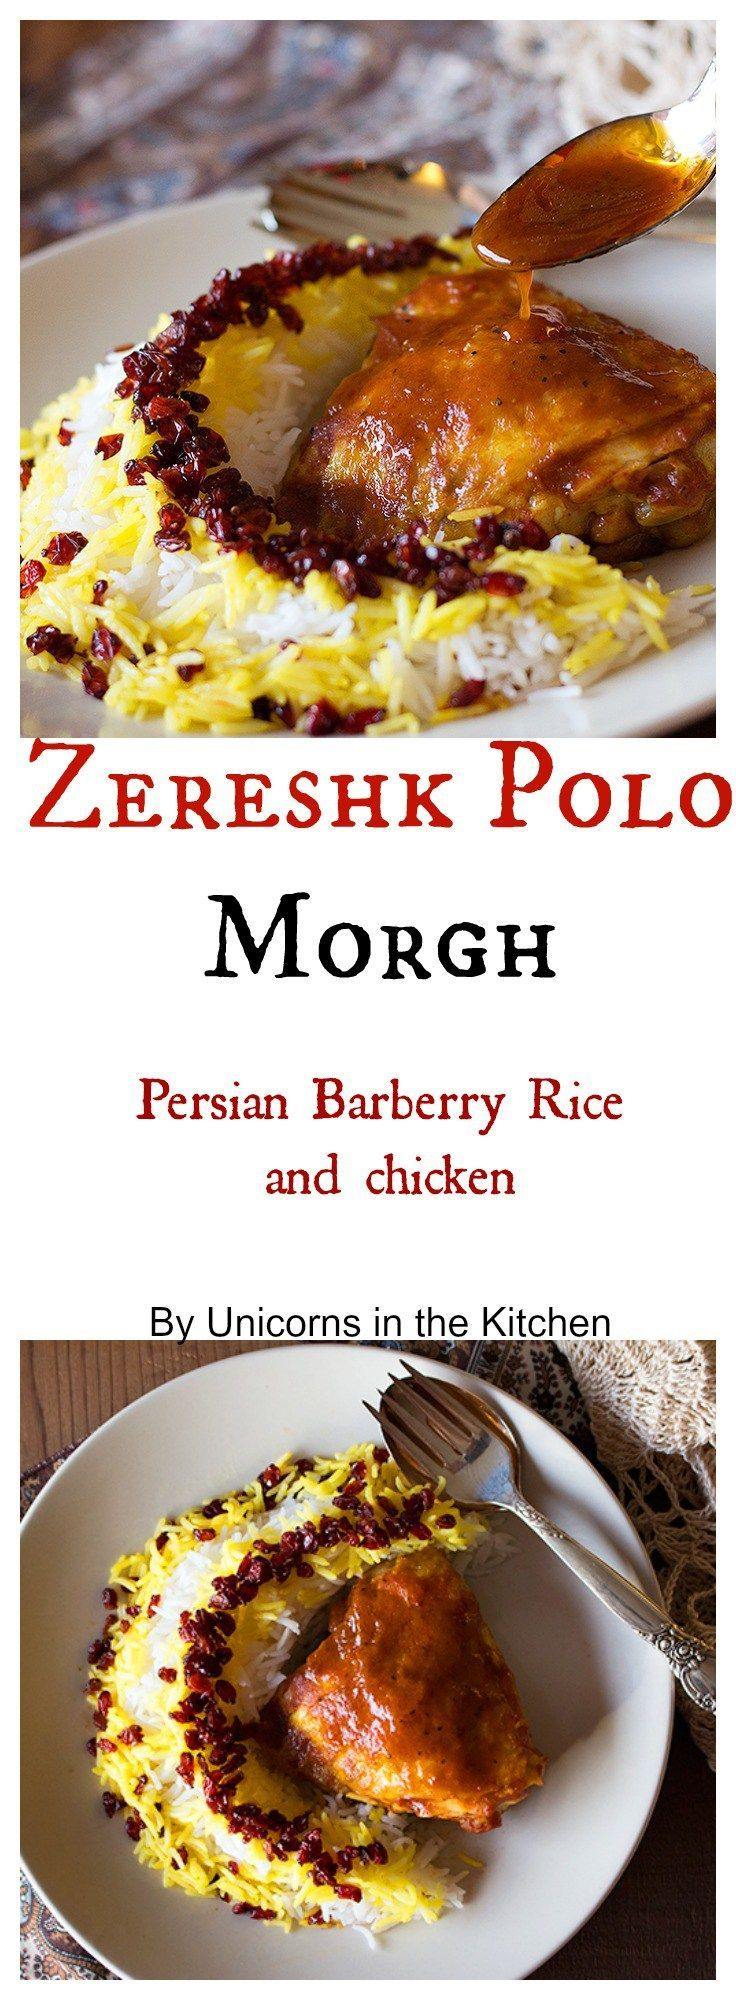 Zereshk polo morgh is a dish full of amazing flavors, including saffron! | Unicorns in the Kitchen